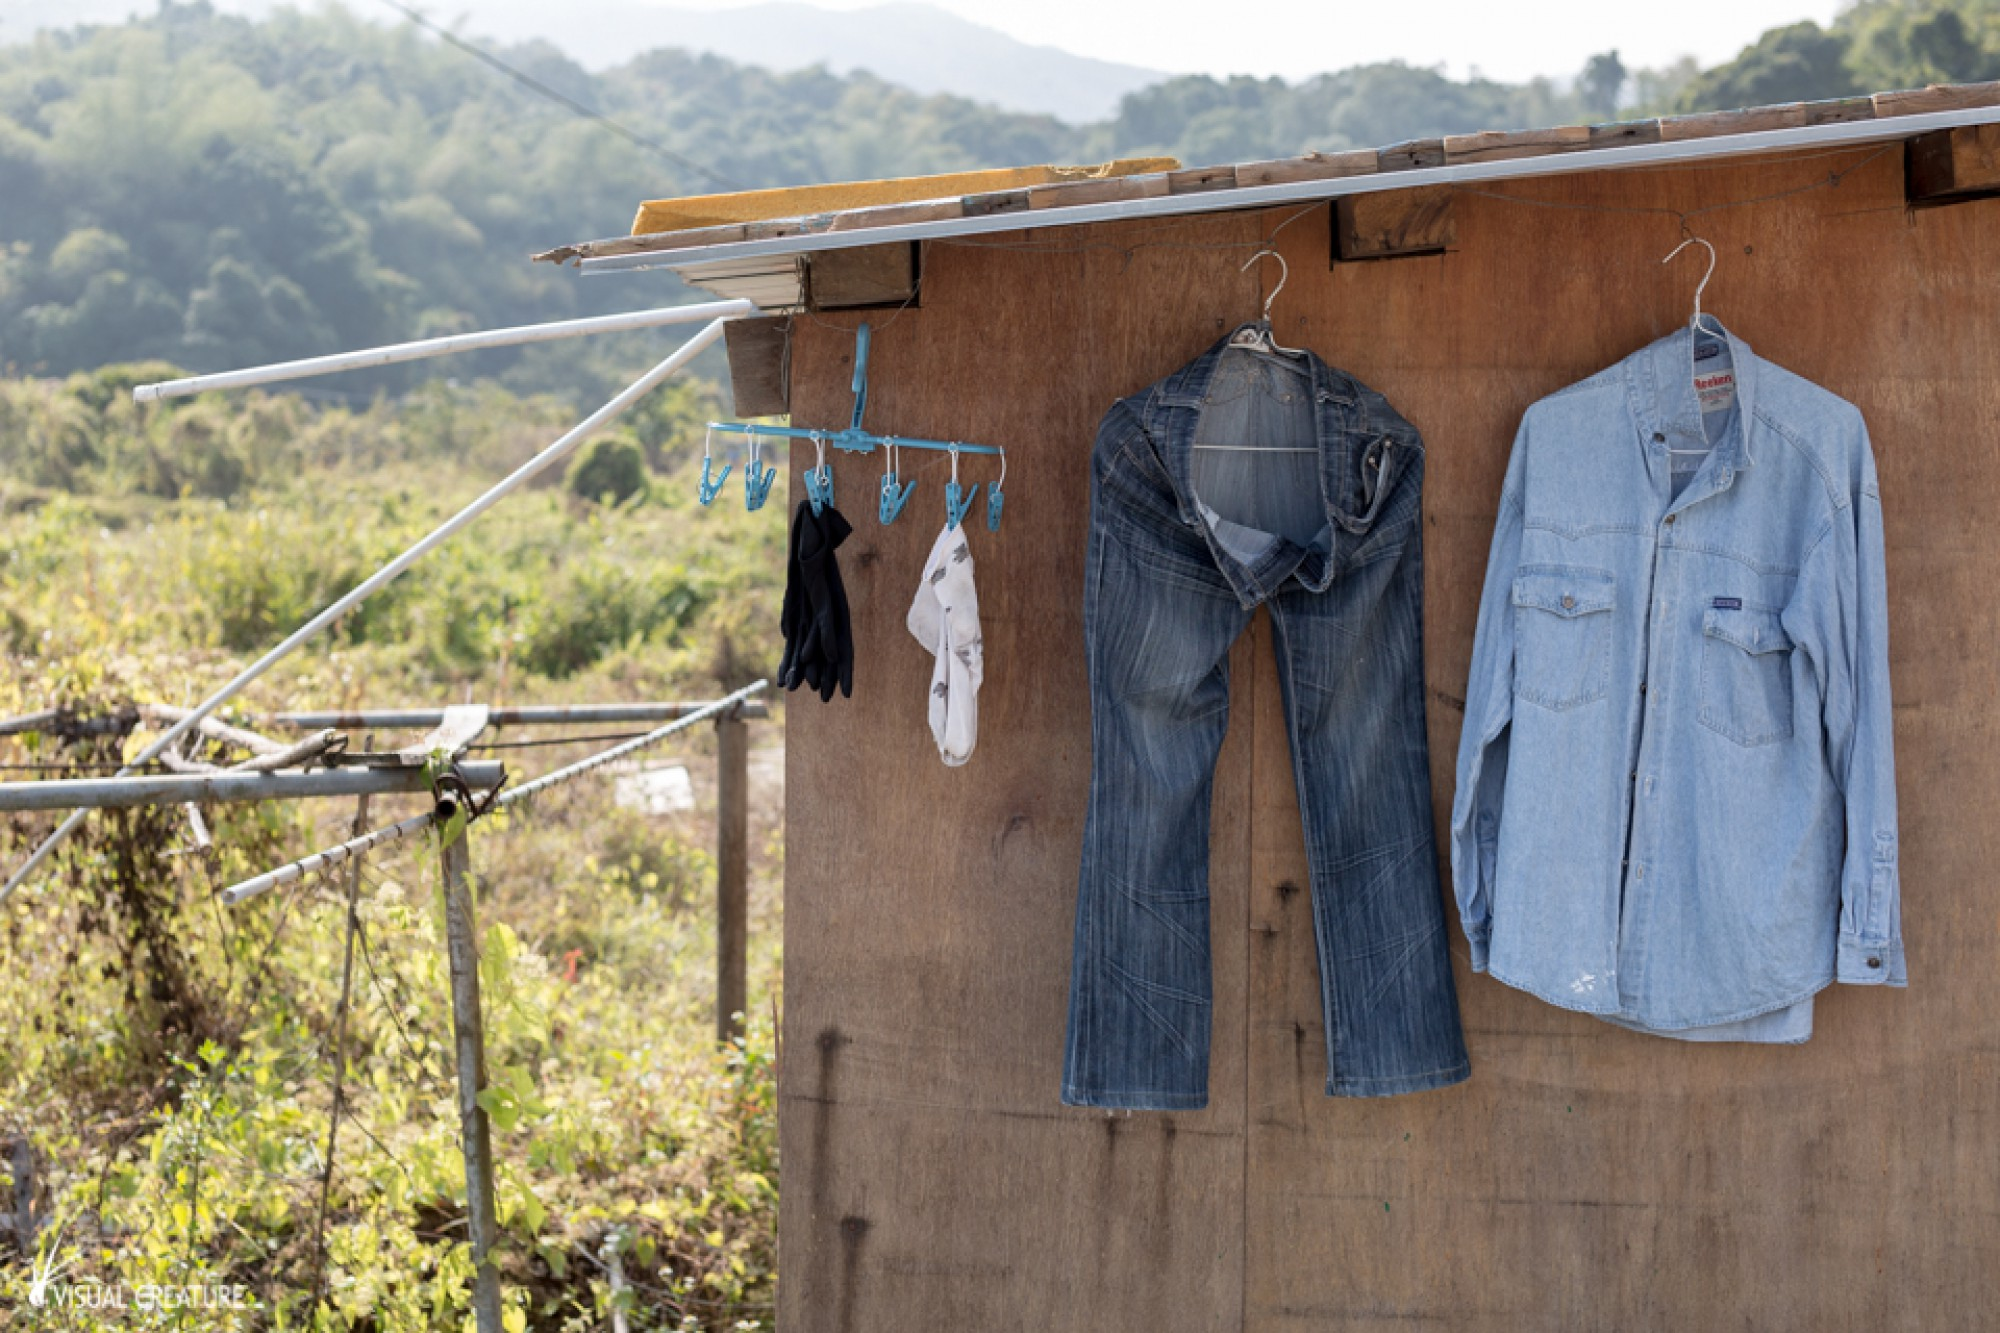 The other side of Hong Kong: Village Life